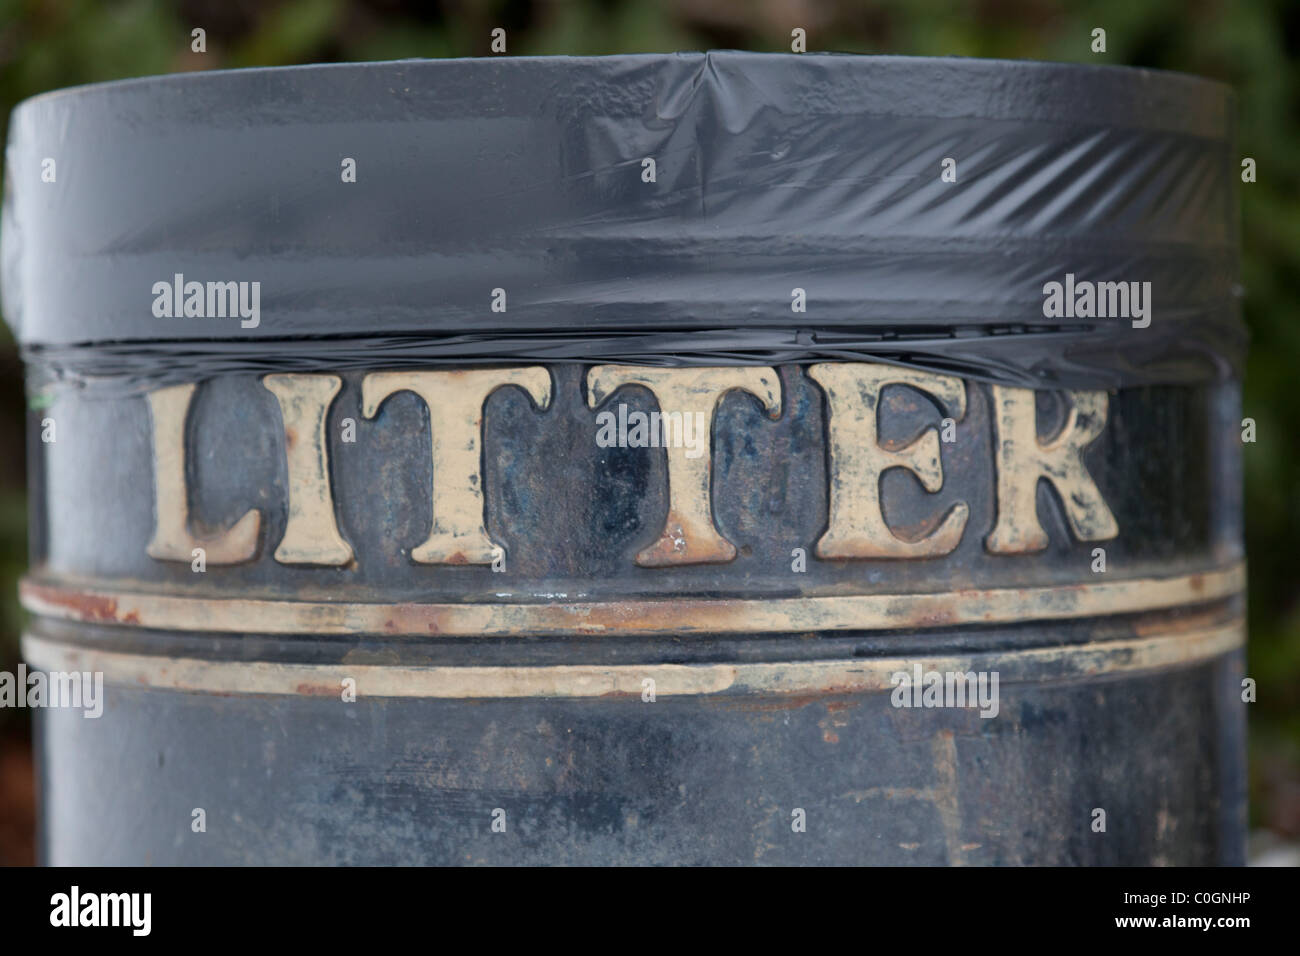 Black litter bin - Stock Image